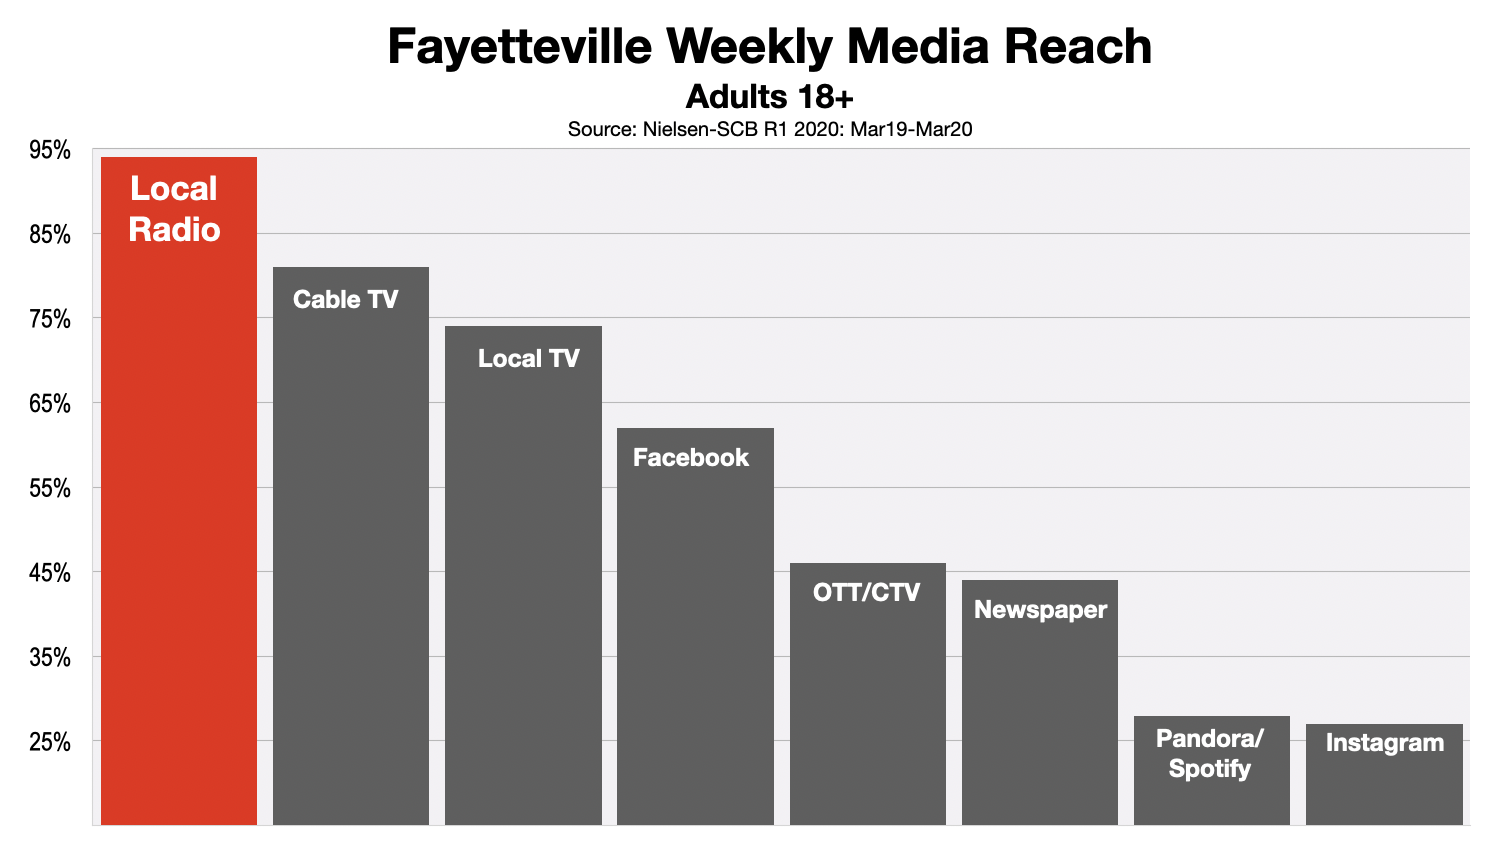 Advertising In Fayetteville Adult Media Reach (2020)